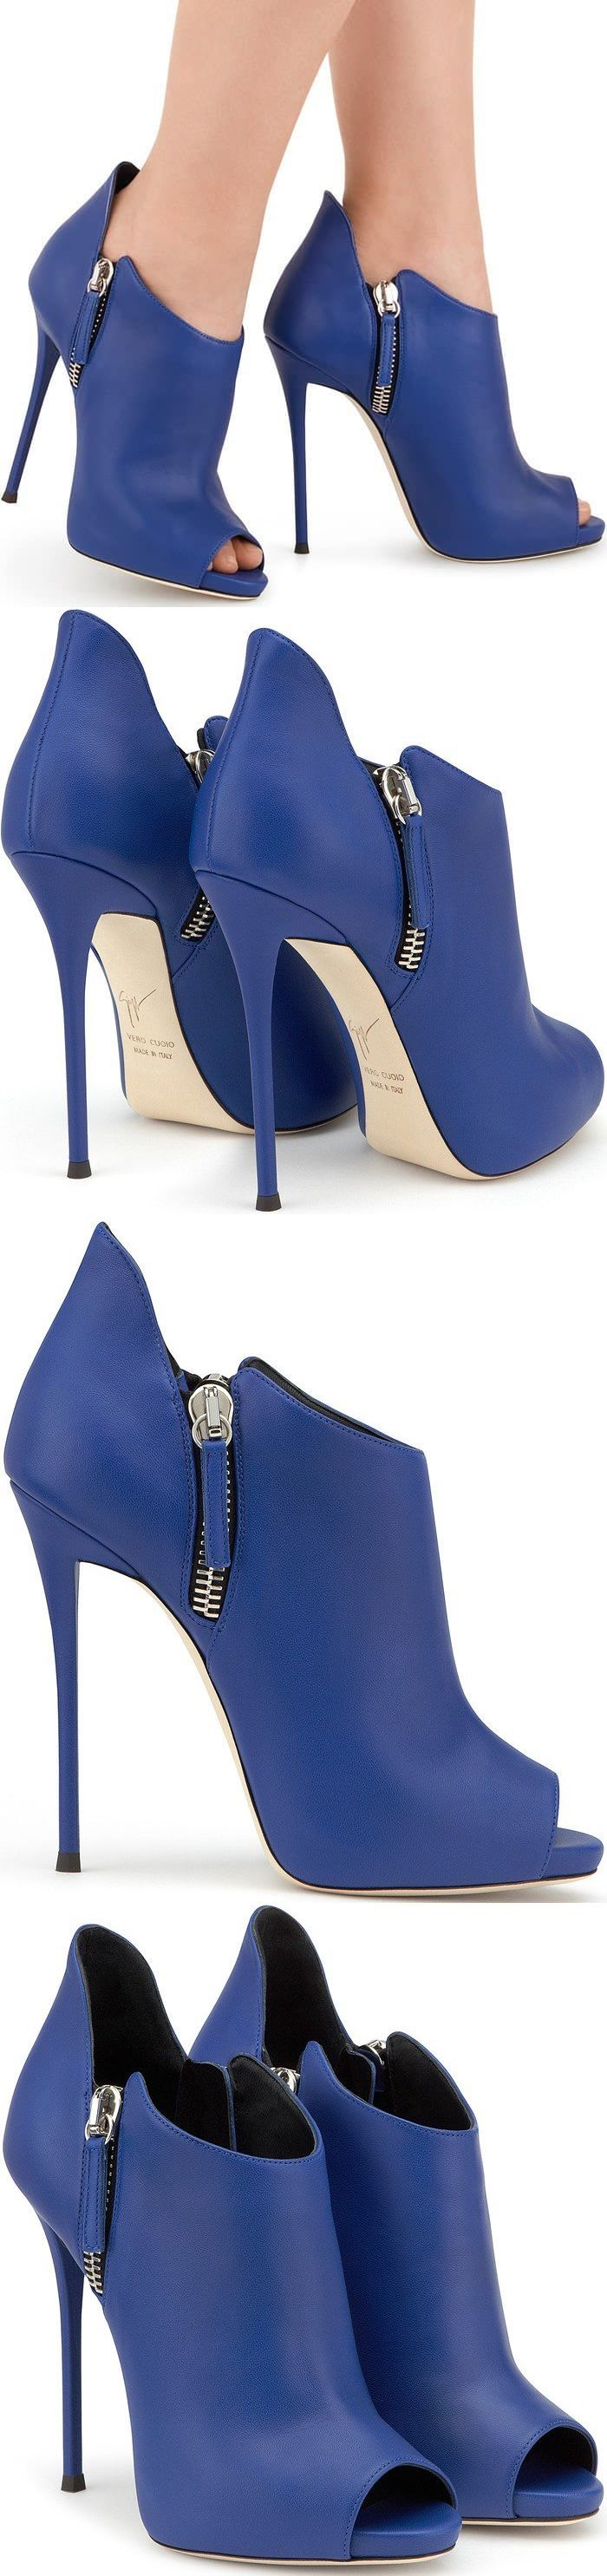 Blue leather 'Malika' booties from Giuseppe Zanotti Design featuring a peep toe, gold-tone hardware, side zip fastenings, a branded insole and a high stiletto heel. #stilettoheelssandals